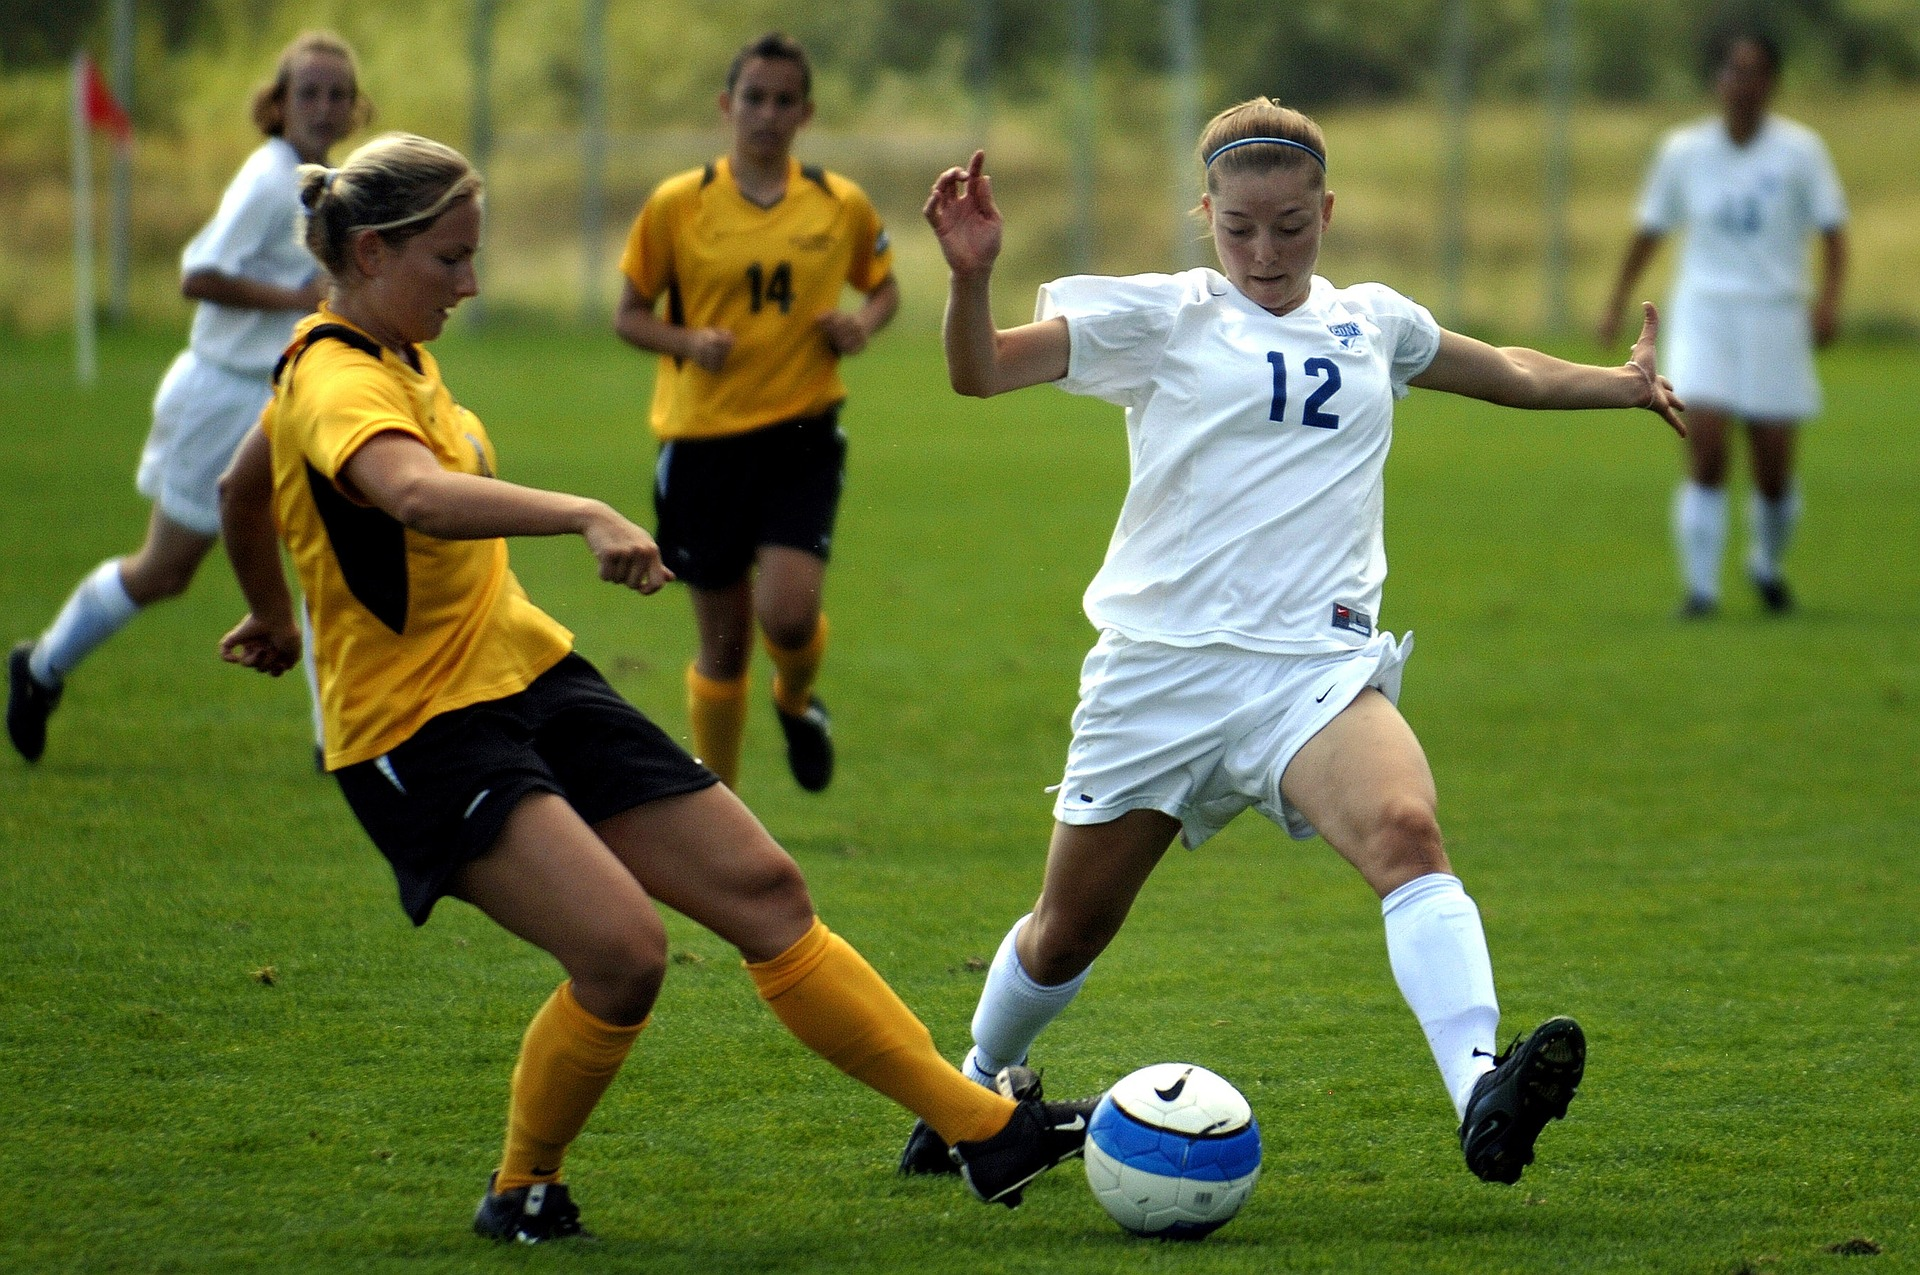 Funding Available for Creating New Female and Disability Football Teams